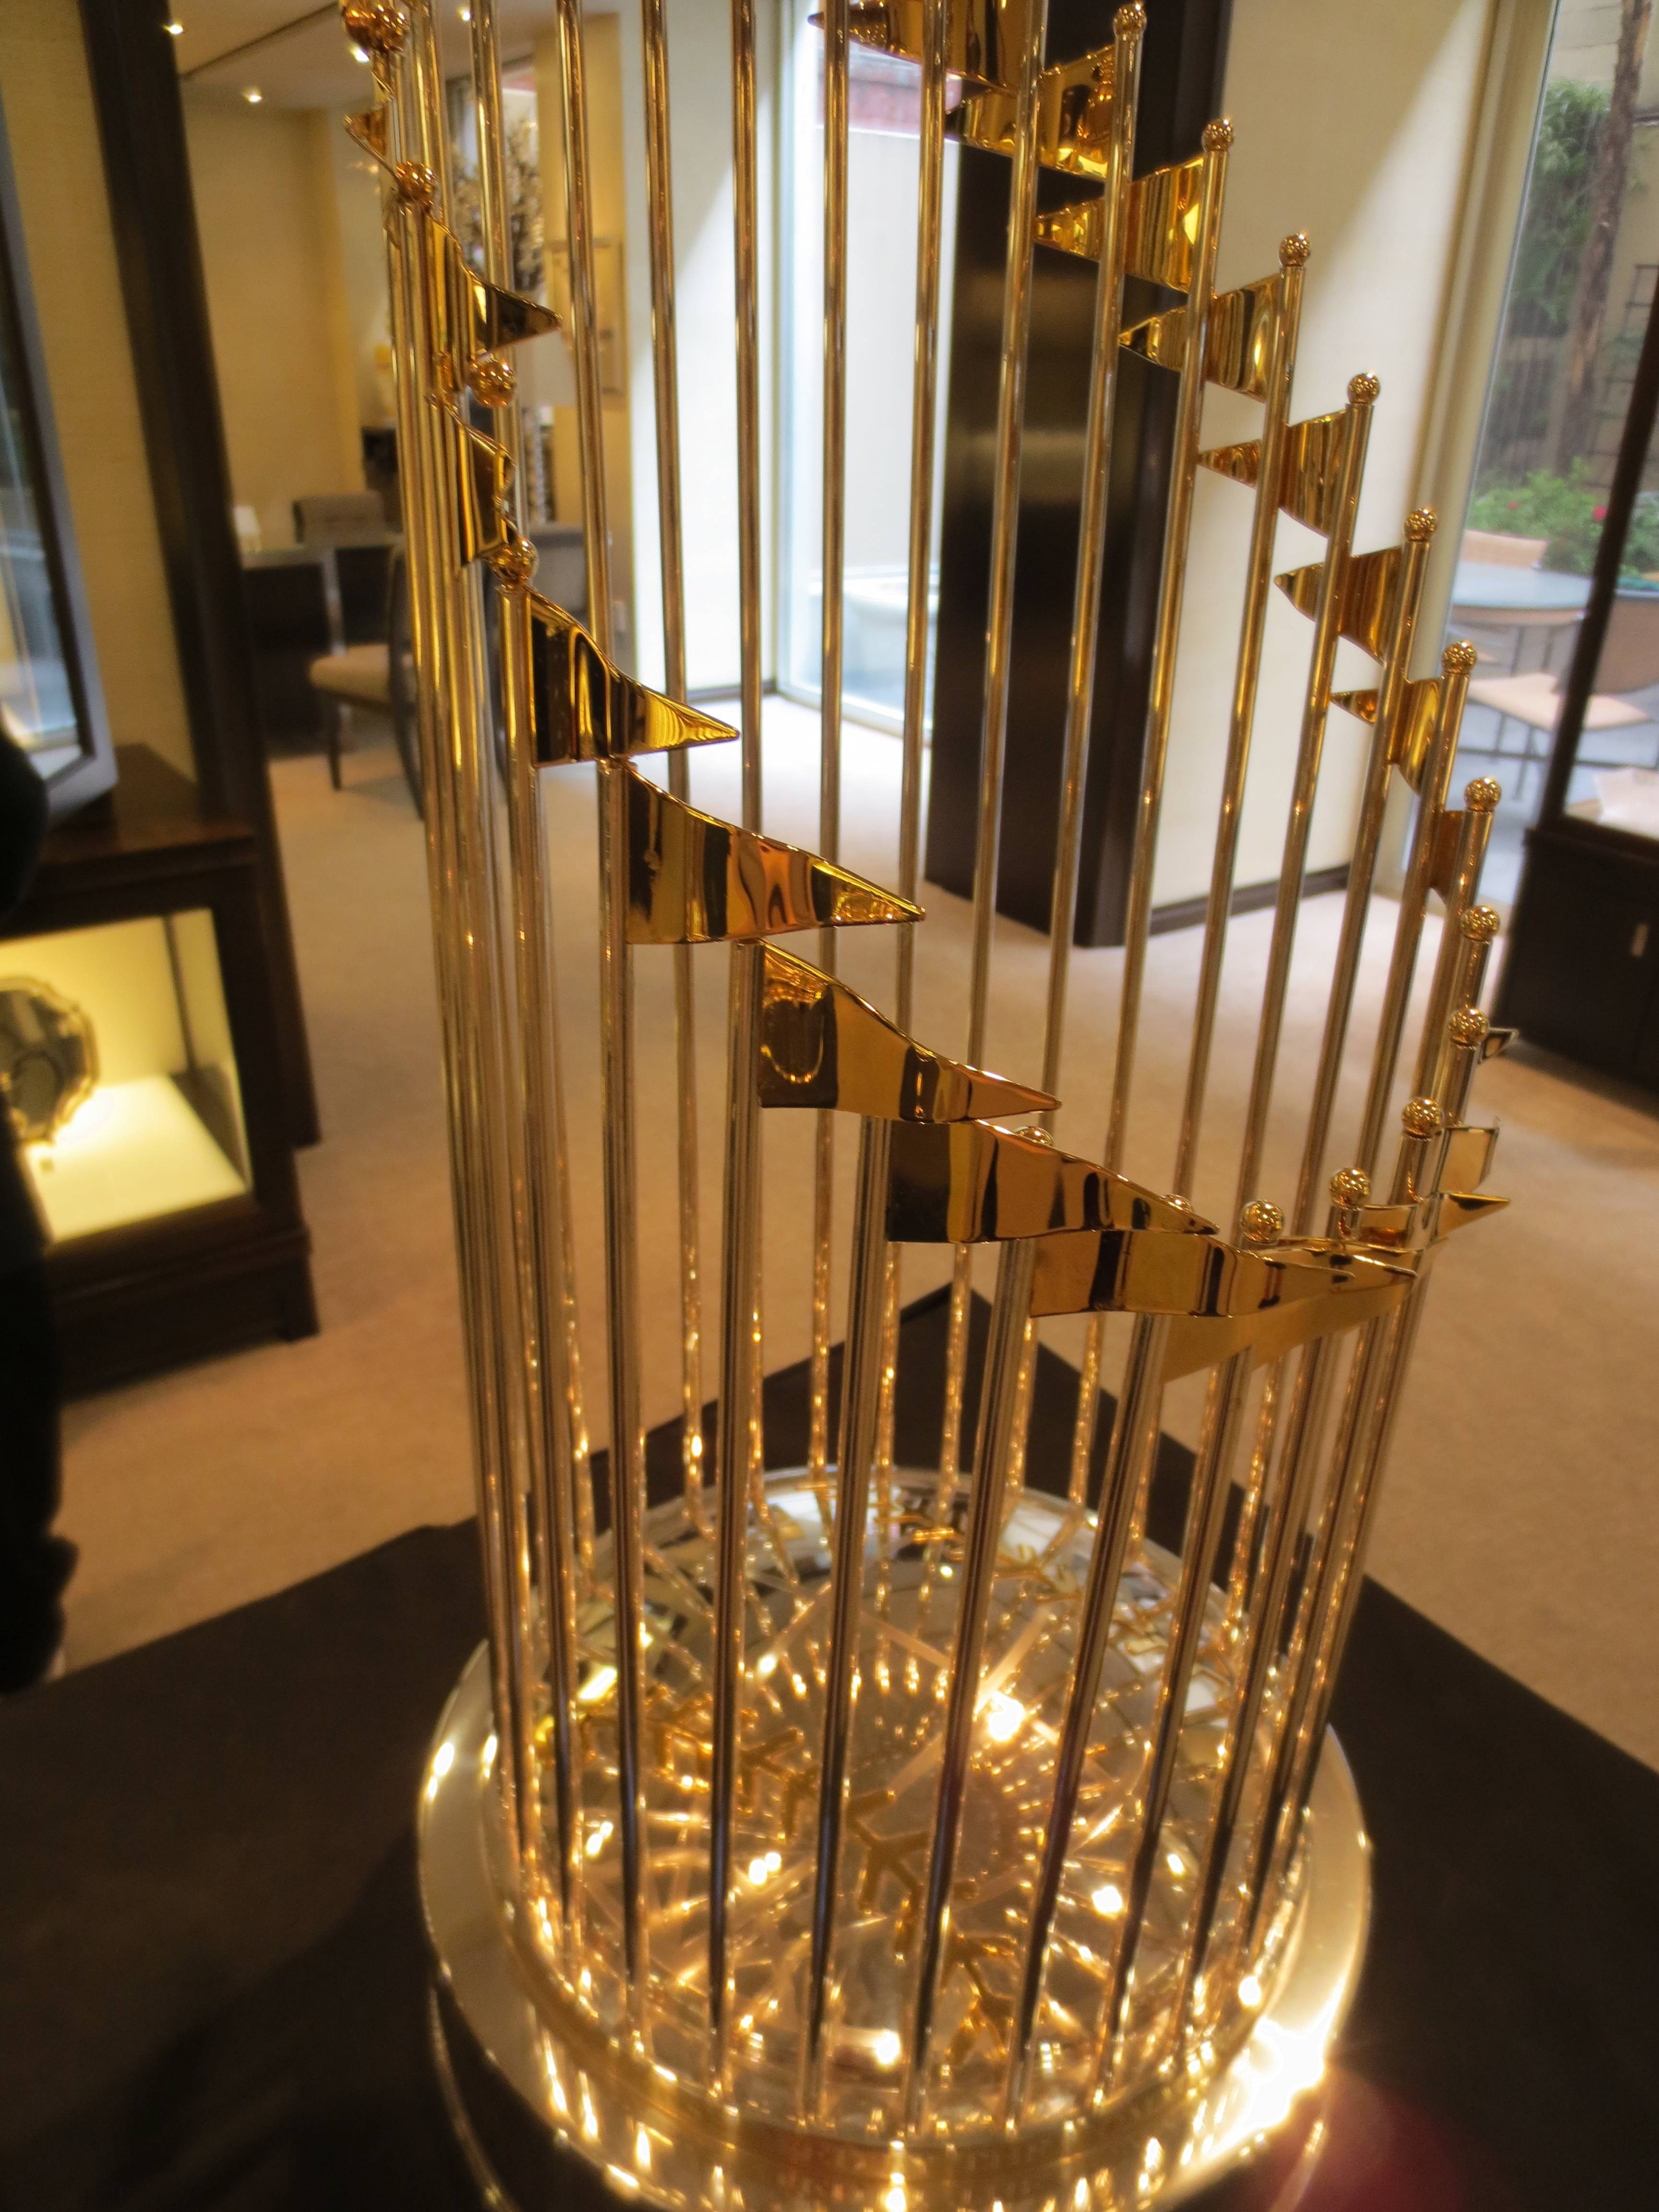 2012 San Francisco Giants World Series Trophy at Tiffany & Co.